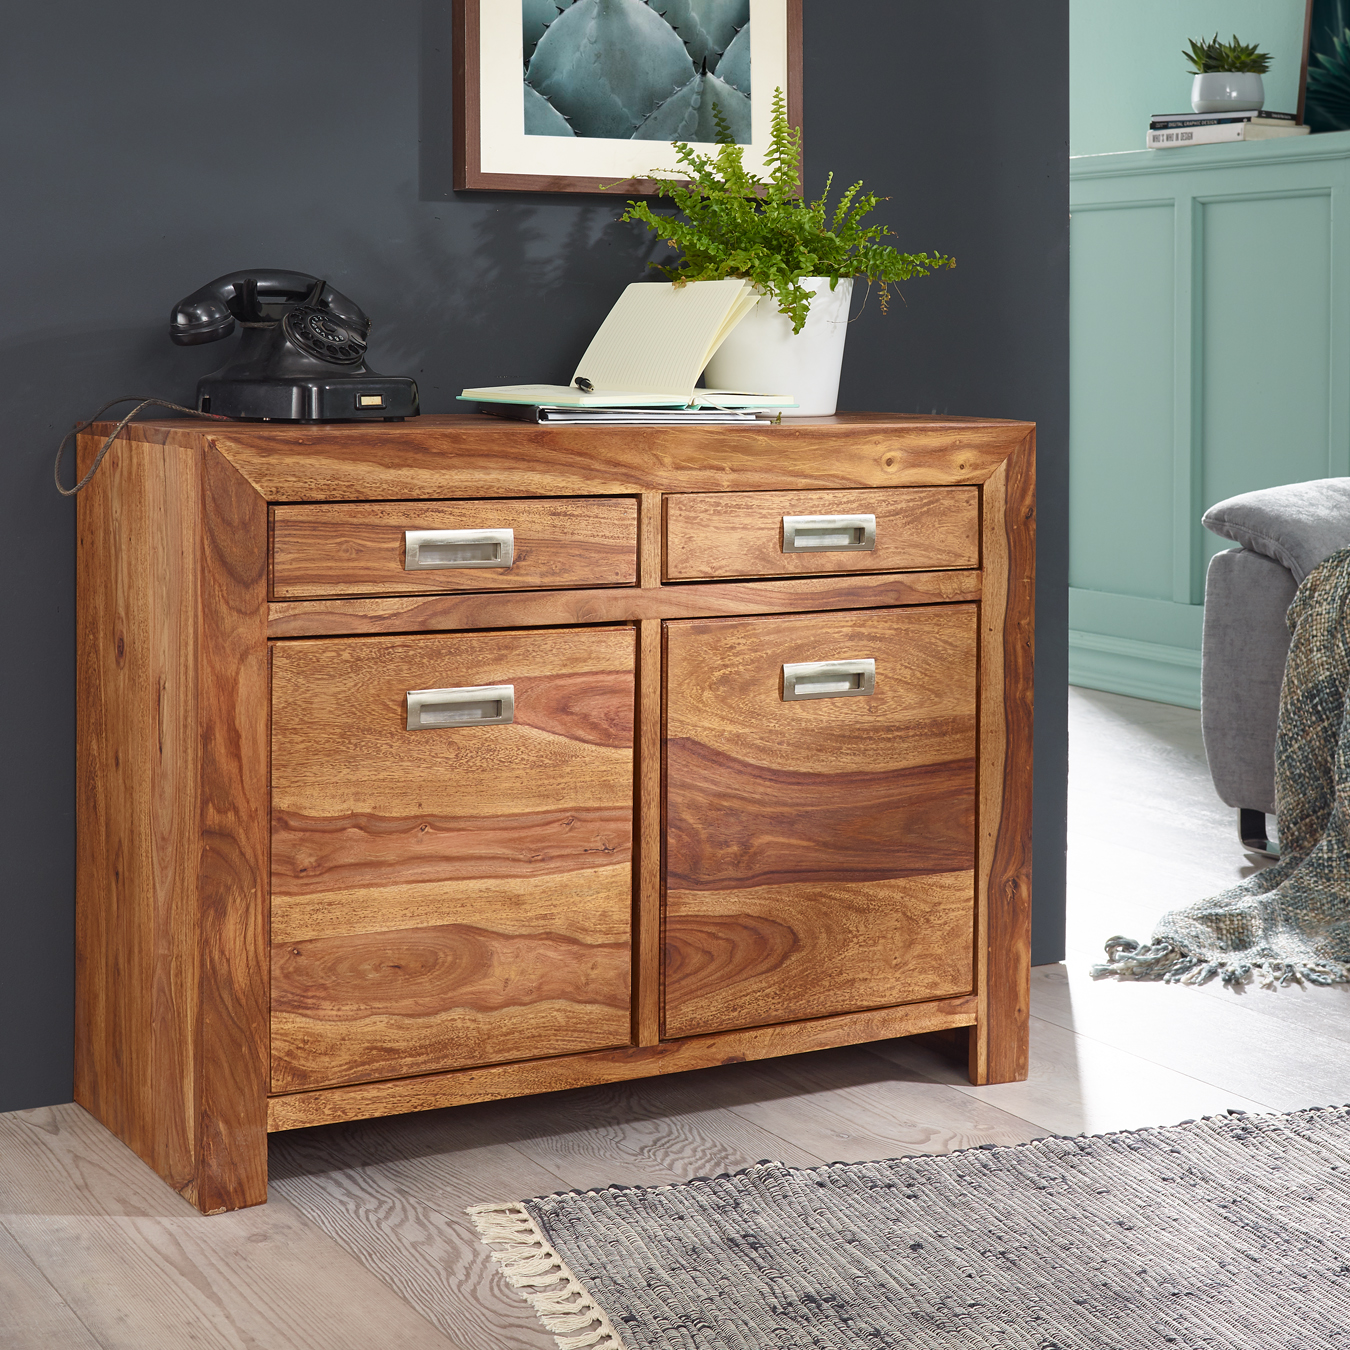 Finebuy Sideboard Sheesham Kommode 90 X 40 X 70 Cm Massiv Holz